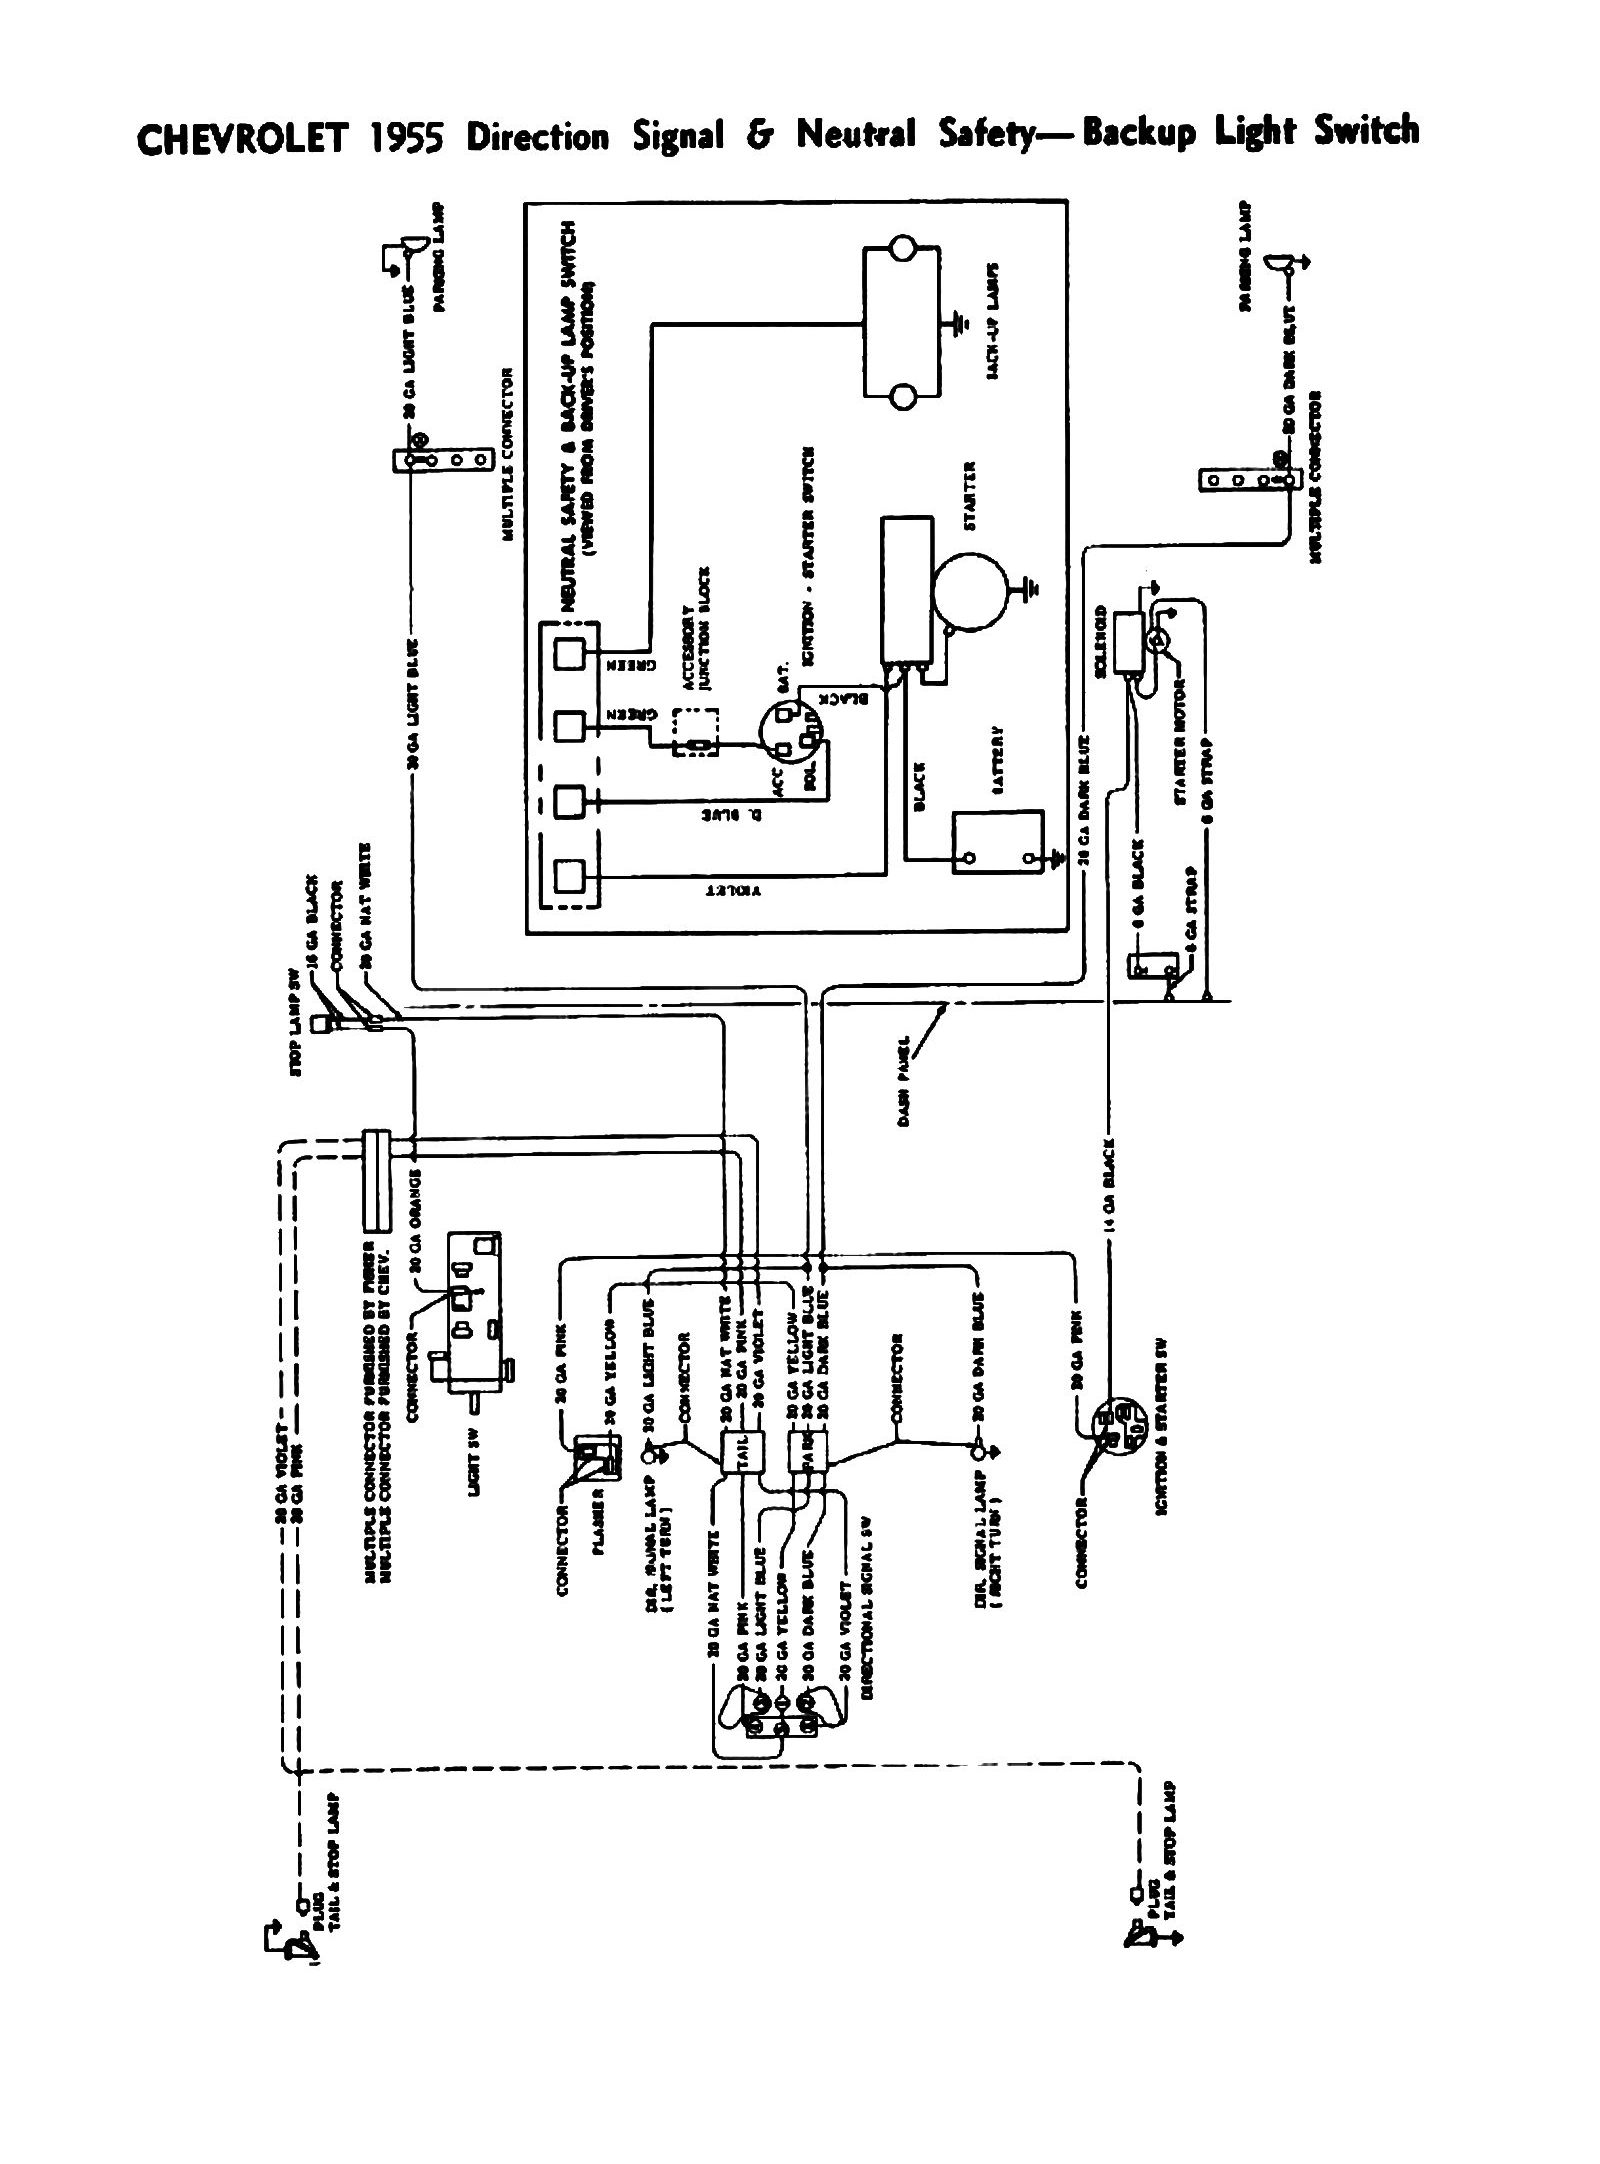 55signal chevy wiring diagrams GM Neutral Safety Switch Wiring at edmiracle.co